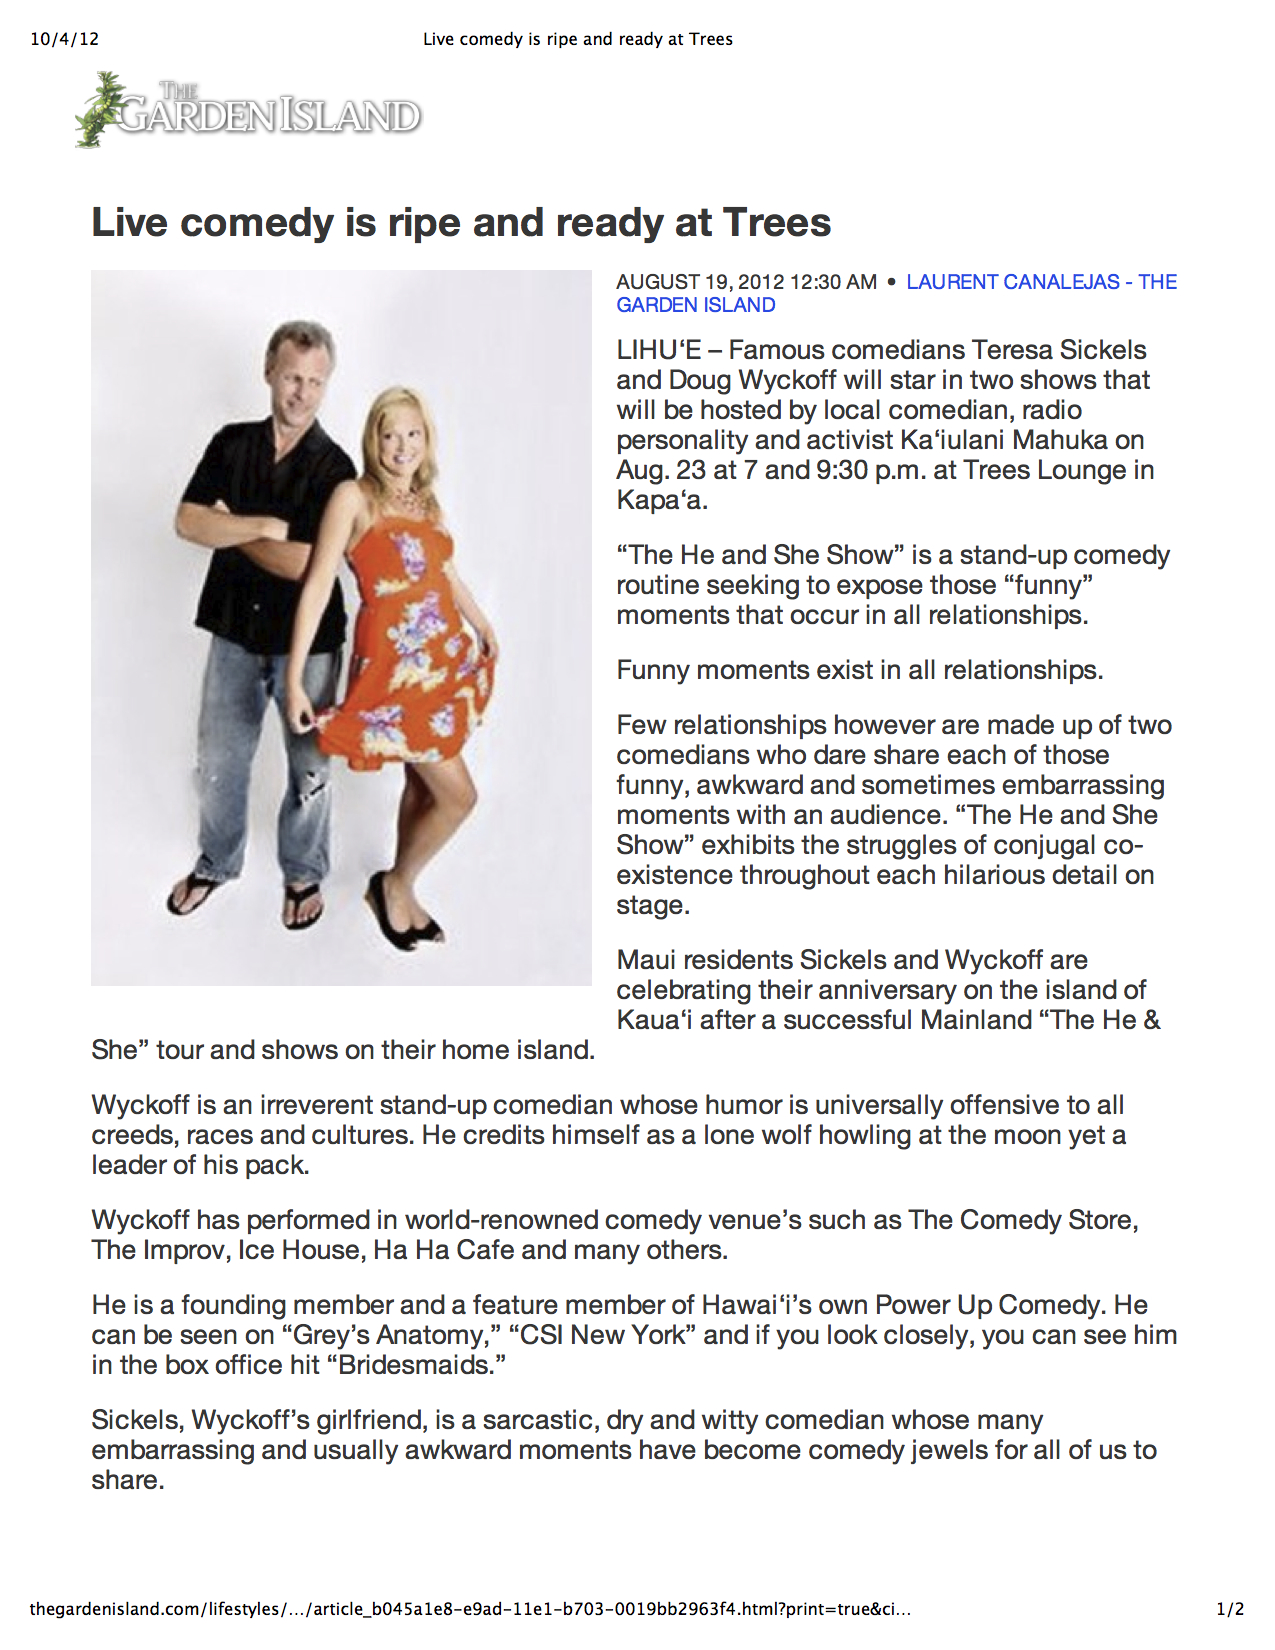 Live comedy is ripe and ready at Trees.jpg